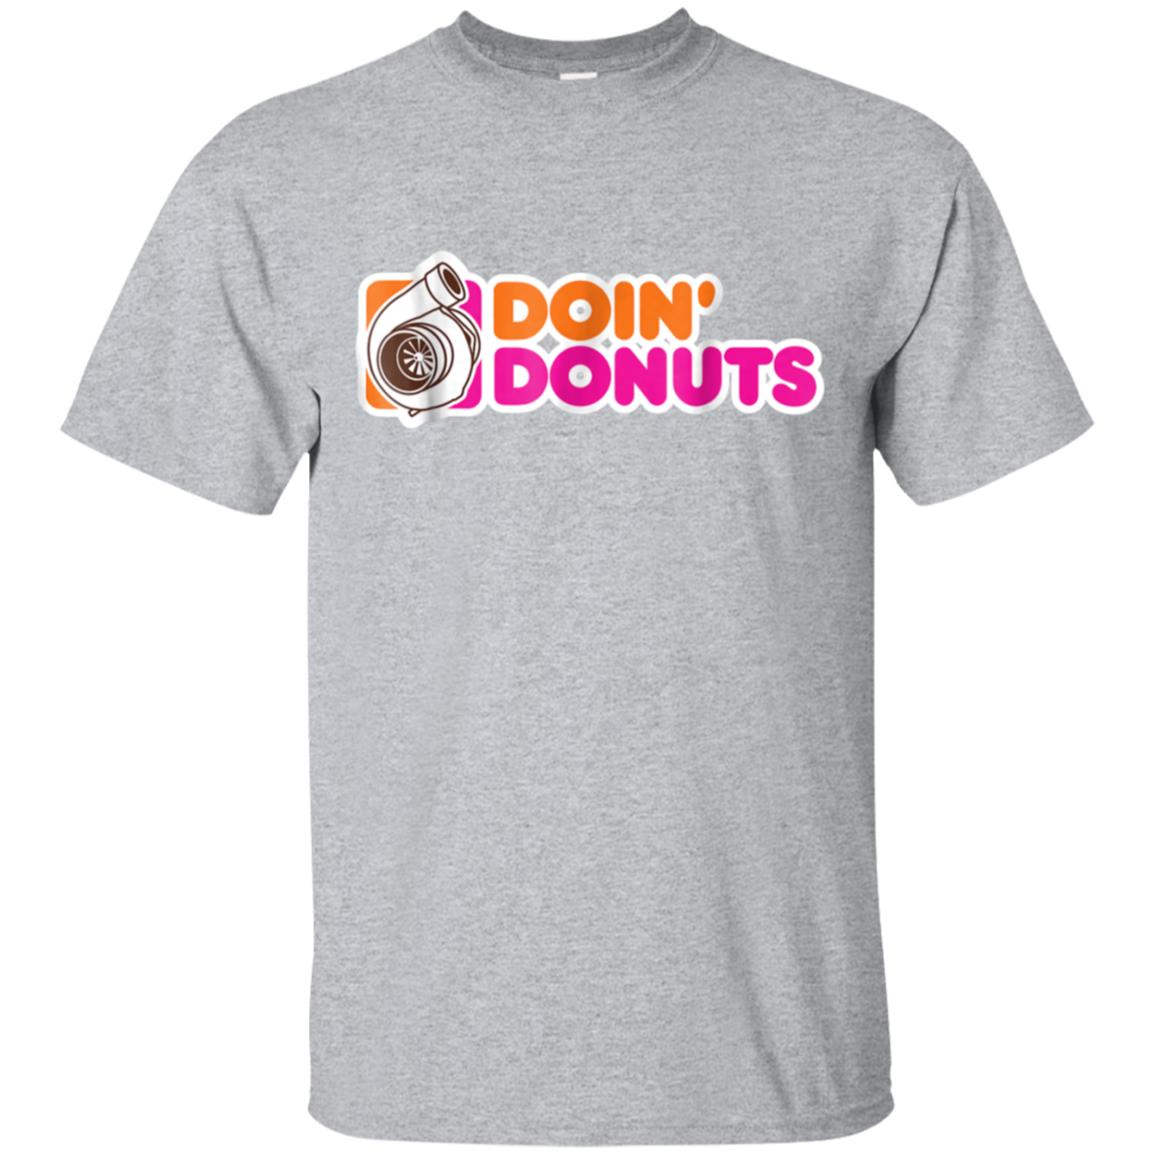 Doin' Donuts - Funny Drift Racing Car Enthusiast T-Shirt 99promocode